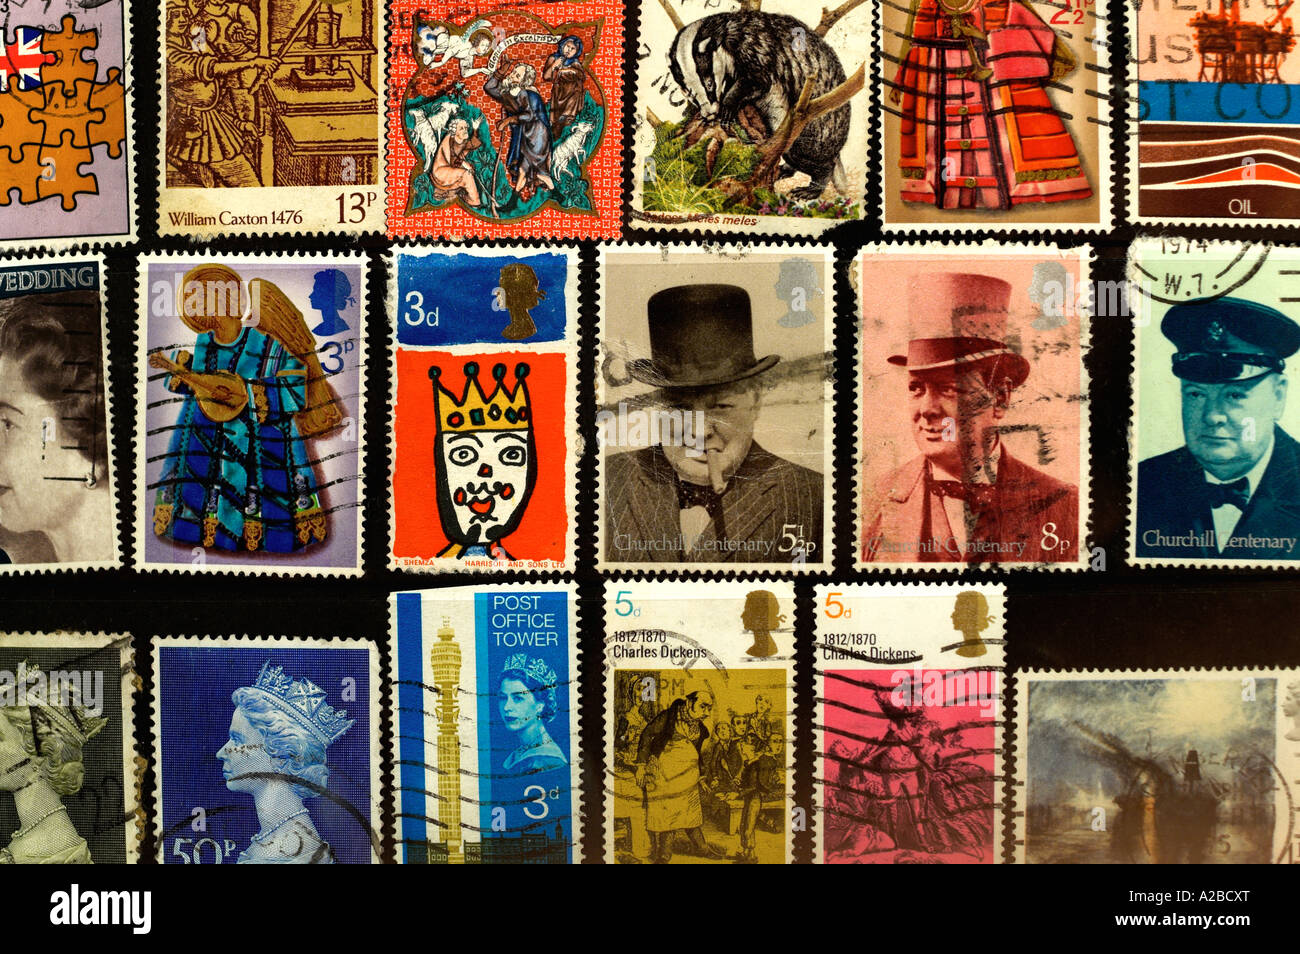 British UK Postage Stamps 1970s - Stock Image